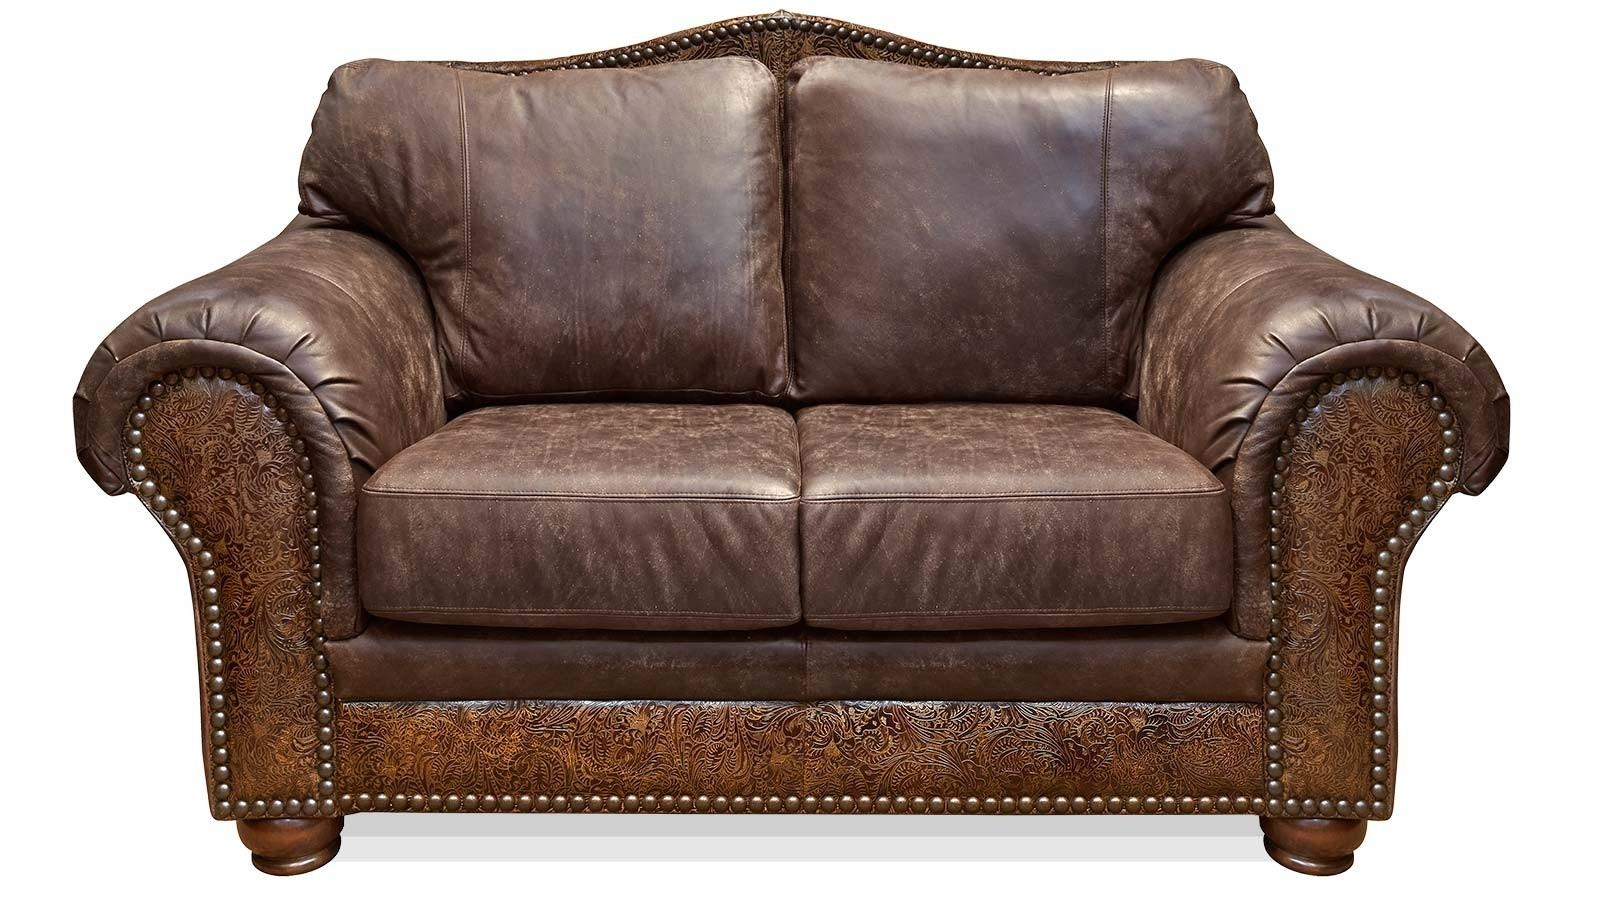 leather pet sofa sectional chaise in brown rhino microfiber and dogs best dog beds thesofa